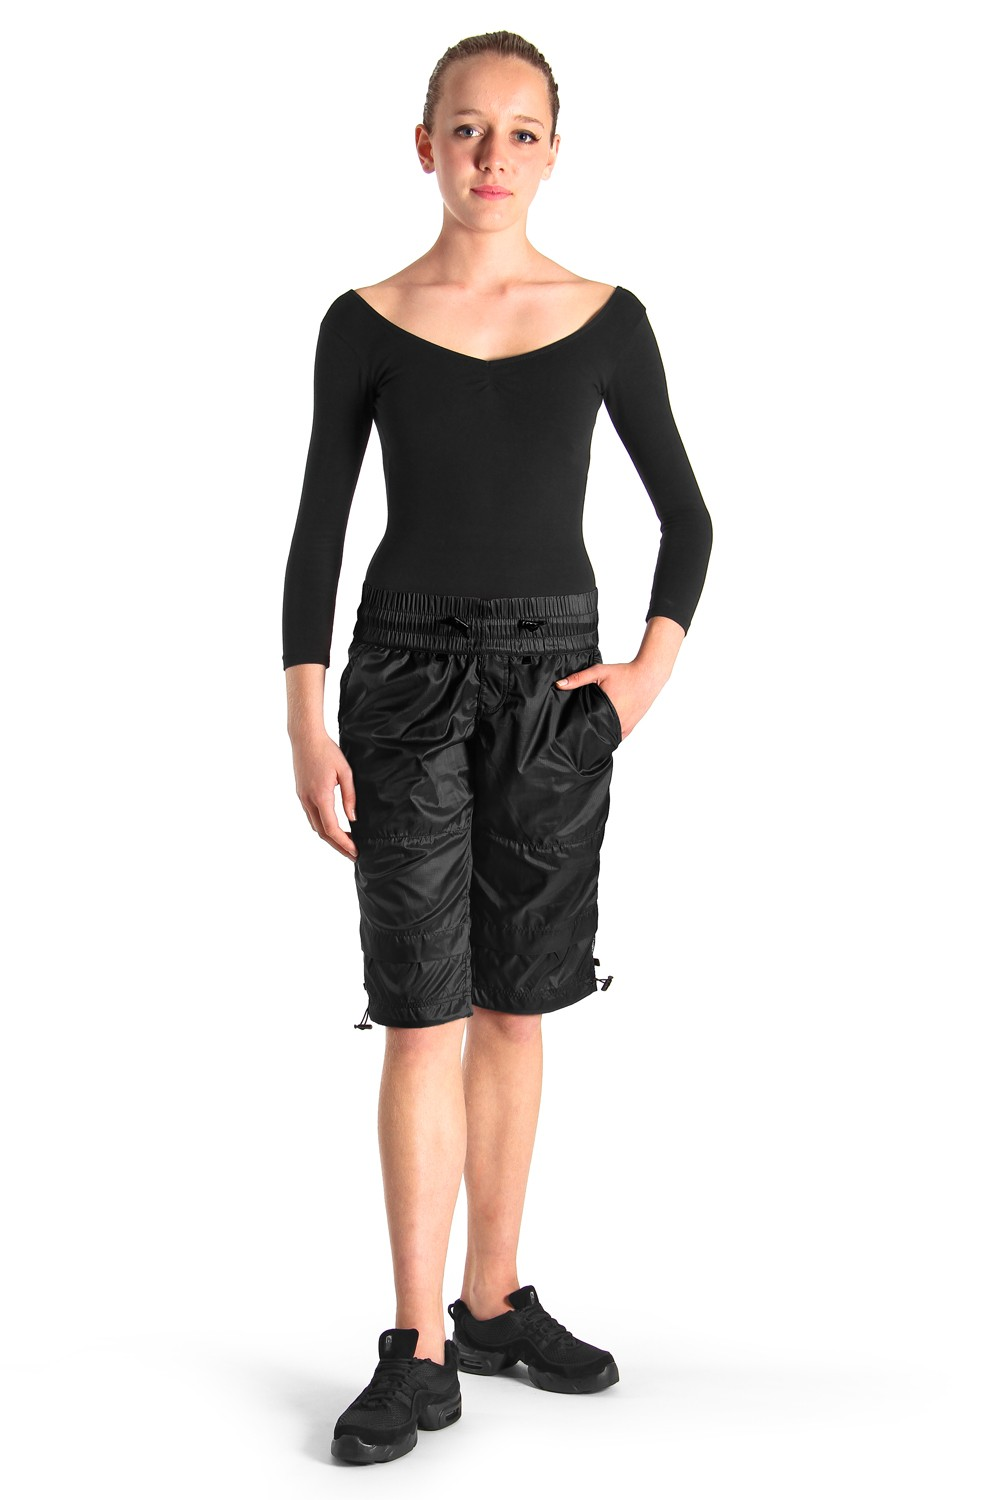 Unisex Warm-up Shorts Women's Dance Shorts